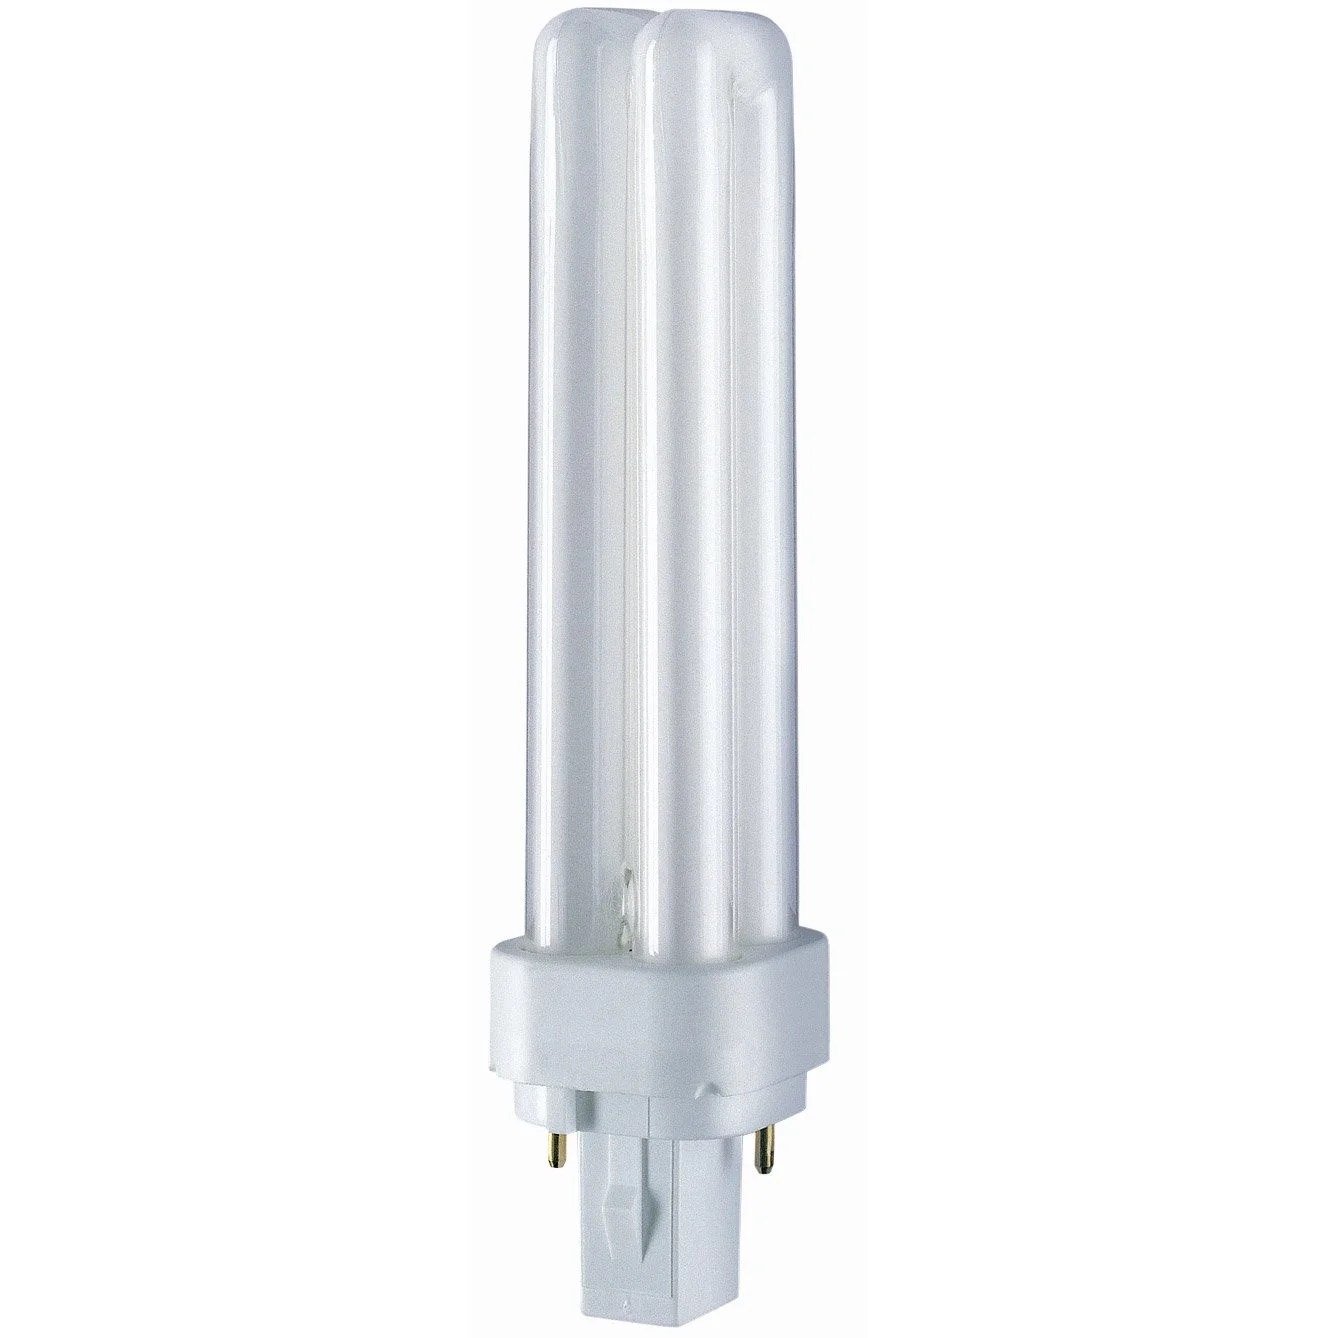 Ampoule Basse Consommation Leroy Merlin Ampoule Basse Consommation G24d 26w 1800lm 4000k Osram